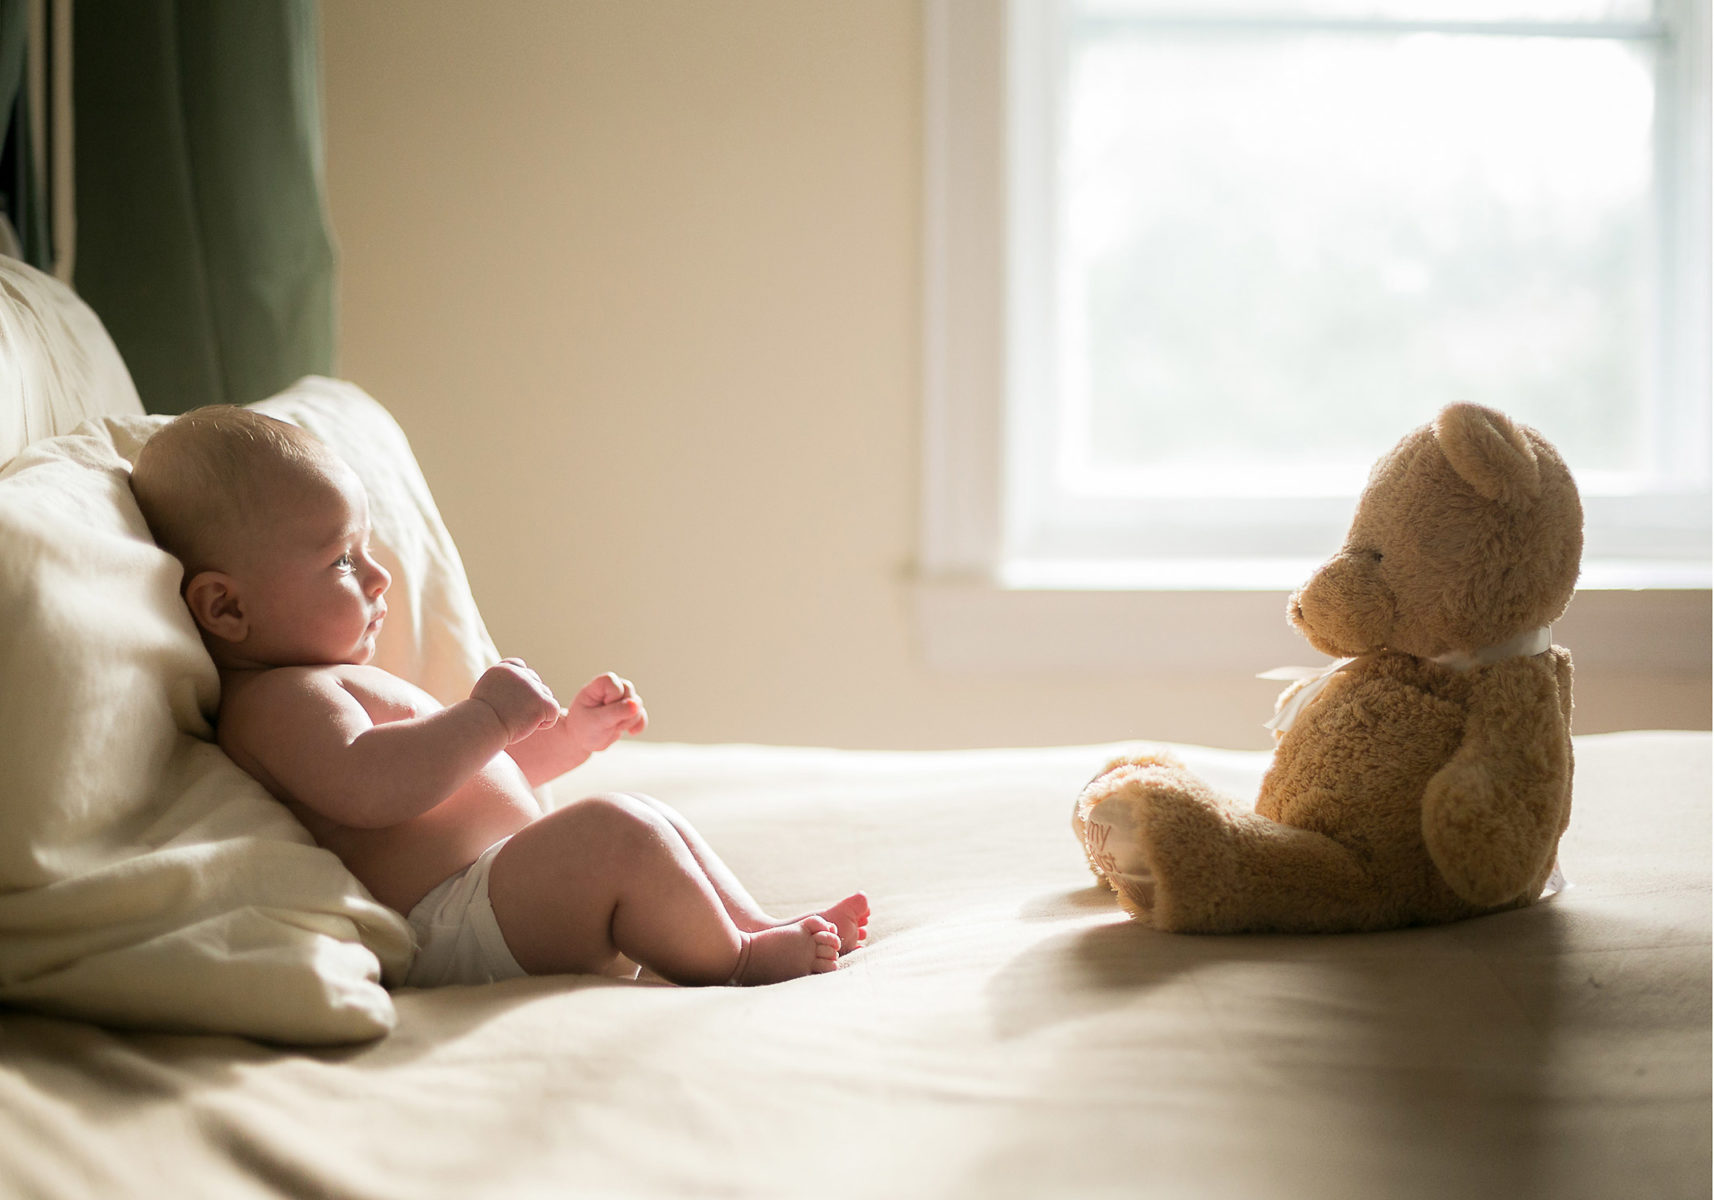 portarit of baby with stuffed animal bear